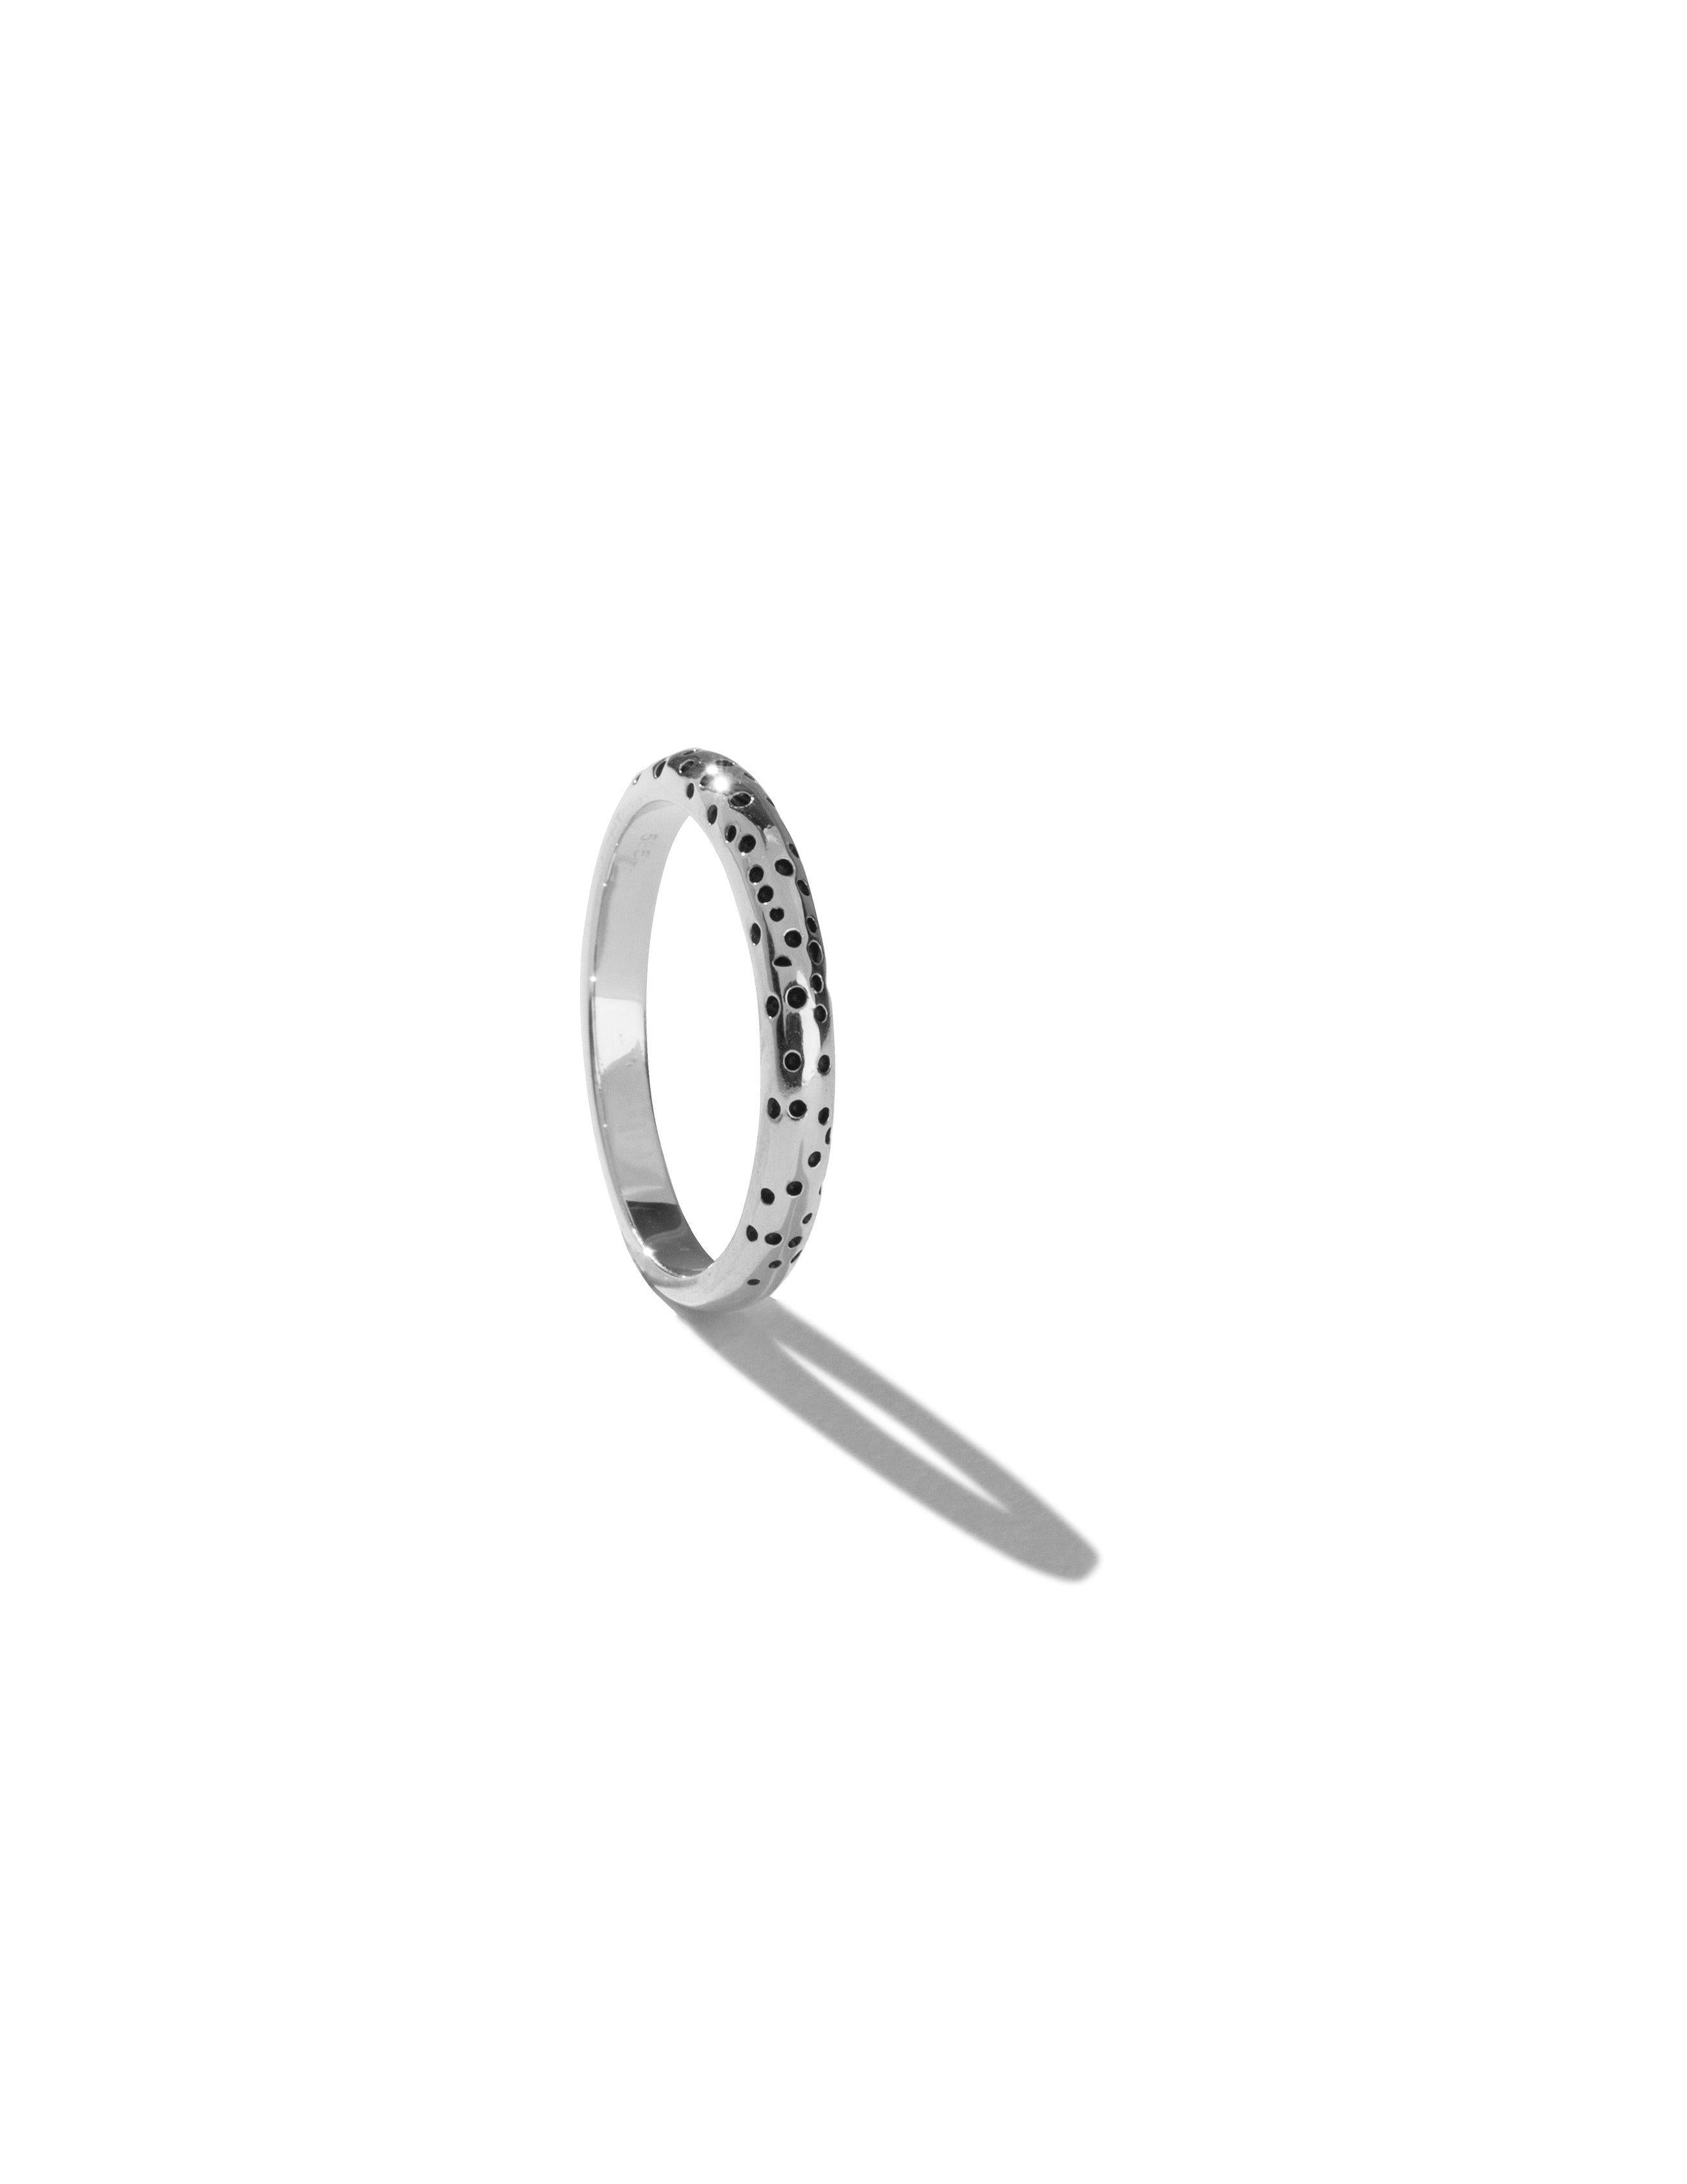 Surface ring silver-The World Is Not Enough Collection -Overload Studios